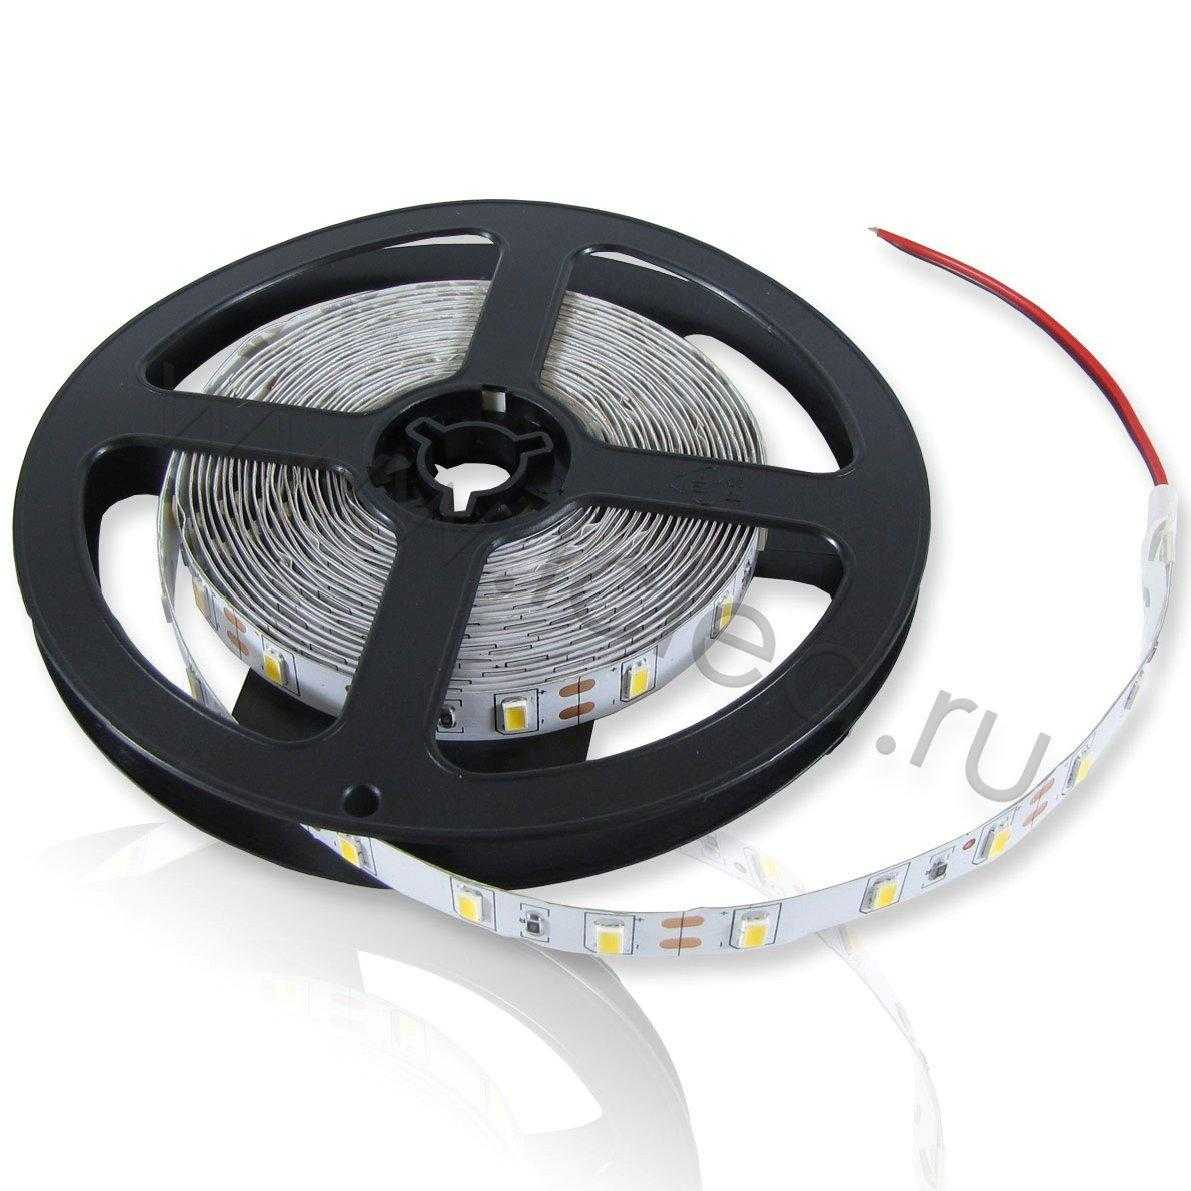 Светодиодная лента  Standart PRO class, 5630, 60led/m, day white, 12V, IP33, P306